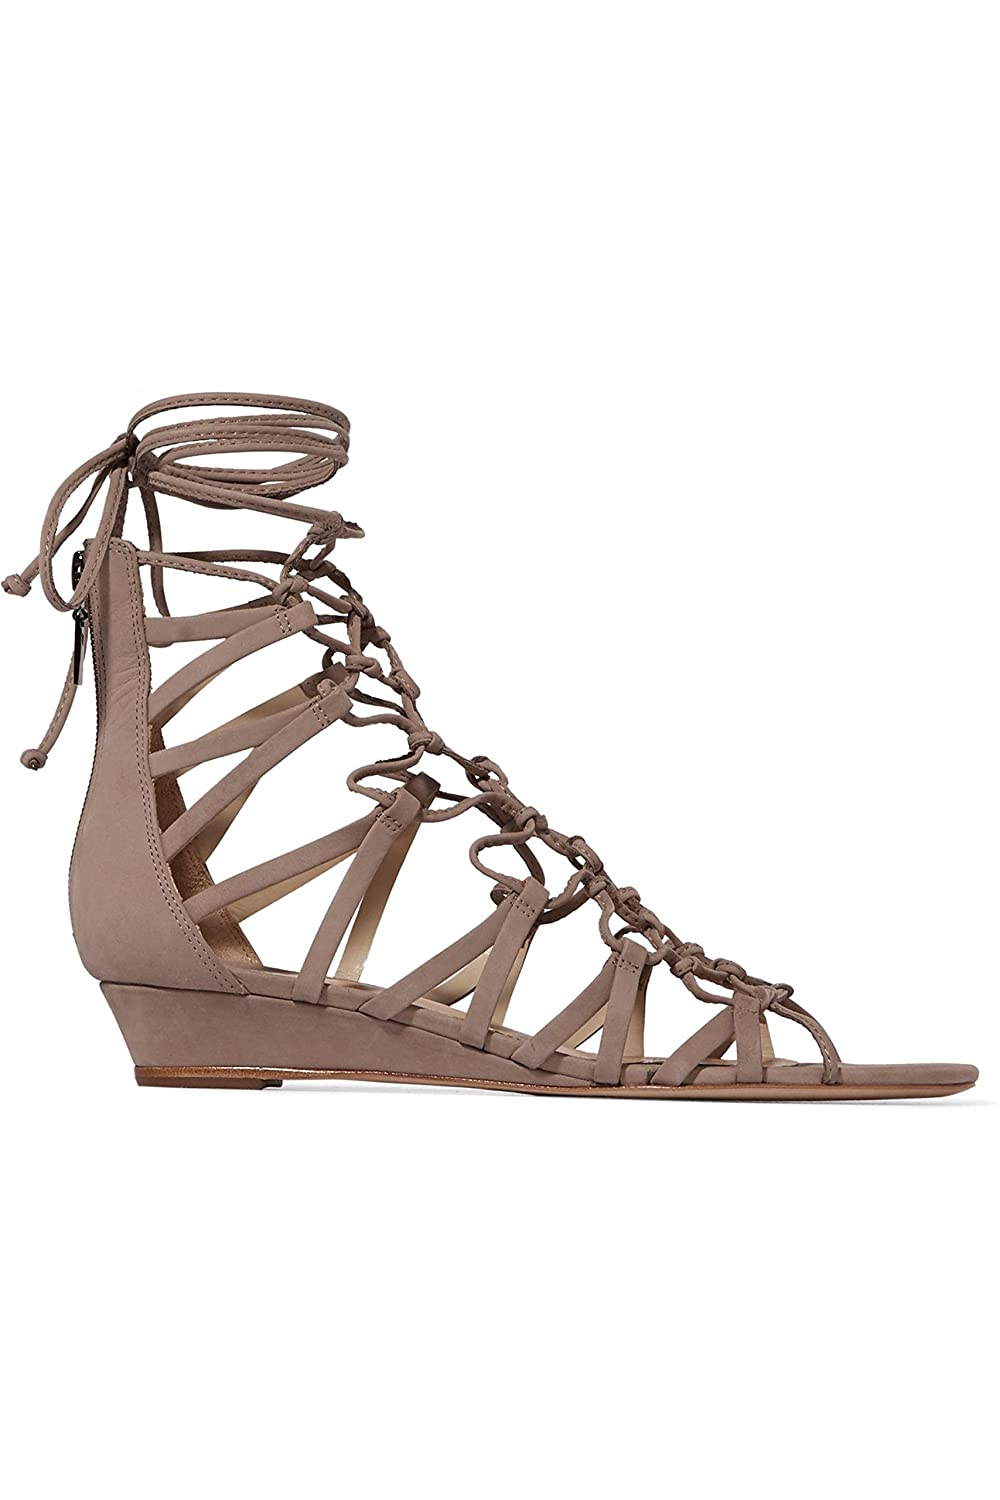 SCHUTZ Nitty Natural Beige Lace-up Leather Low Wedge Gladiator Lace-up Beige Nubuck Sandals B07C5941CH 11 B(M) US e408c6